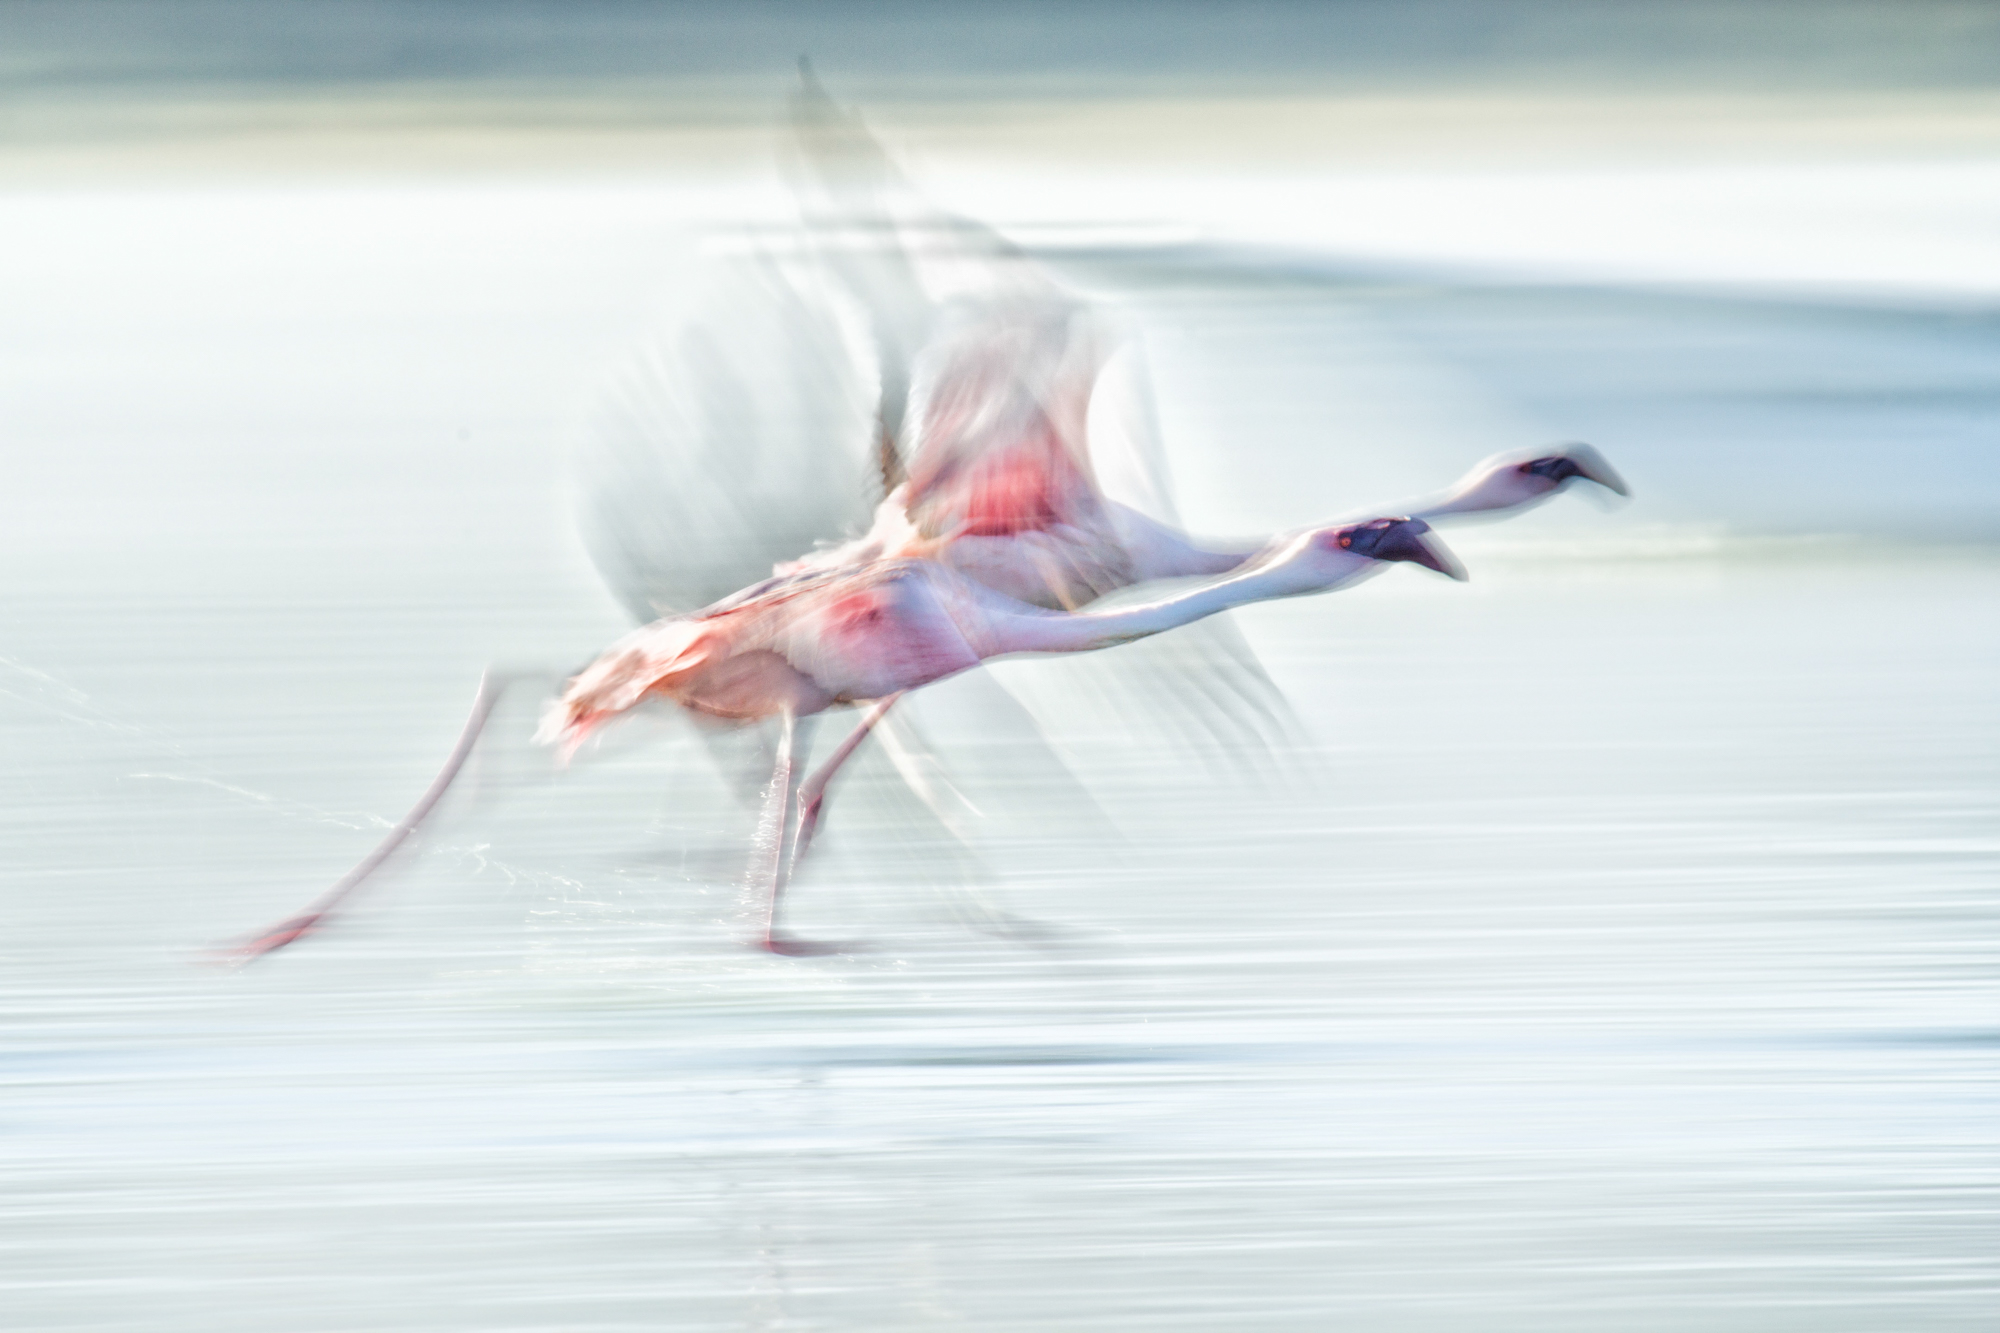 A slow panning shot of a pair of pink flamingoes running across the water  to take flight.